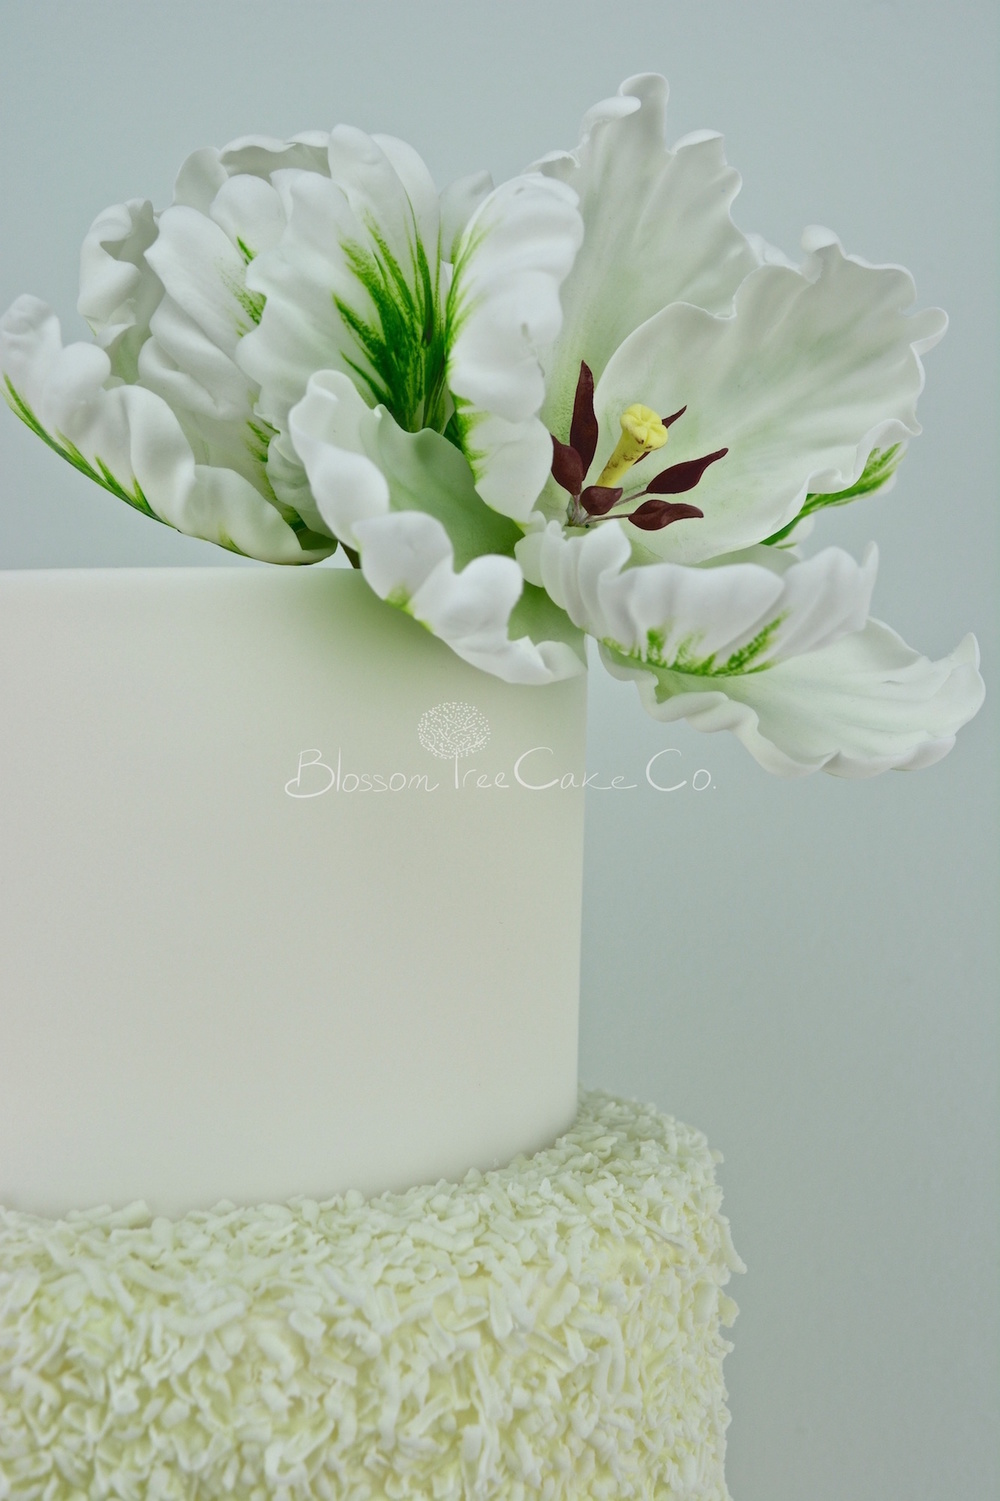 White and Green Parrot Tulips with Gold Leaf by Blossom Tree Cake Co Harrogate North Yorkshire_flower 1.jpg